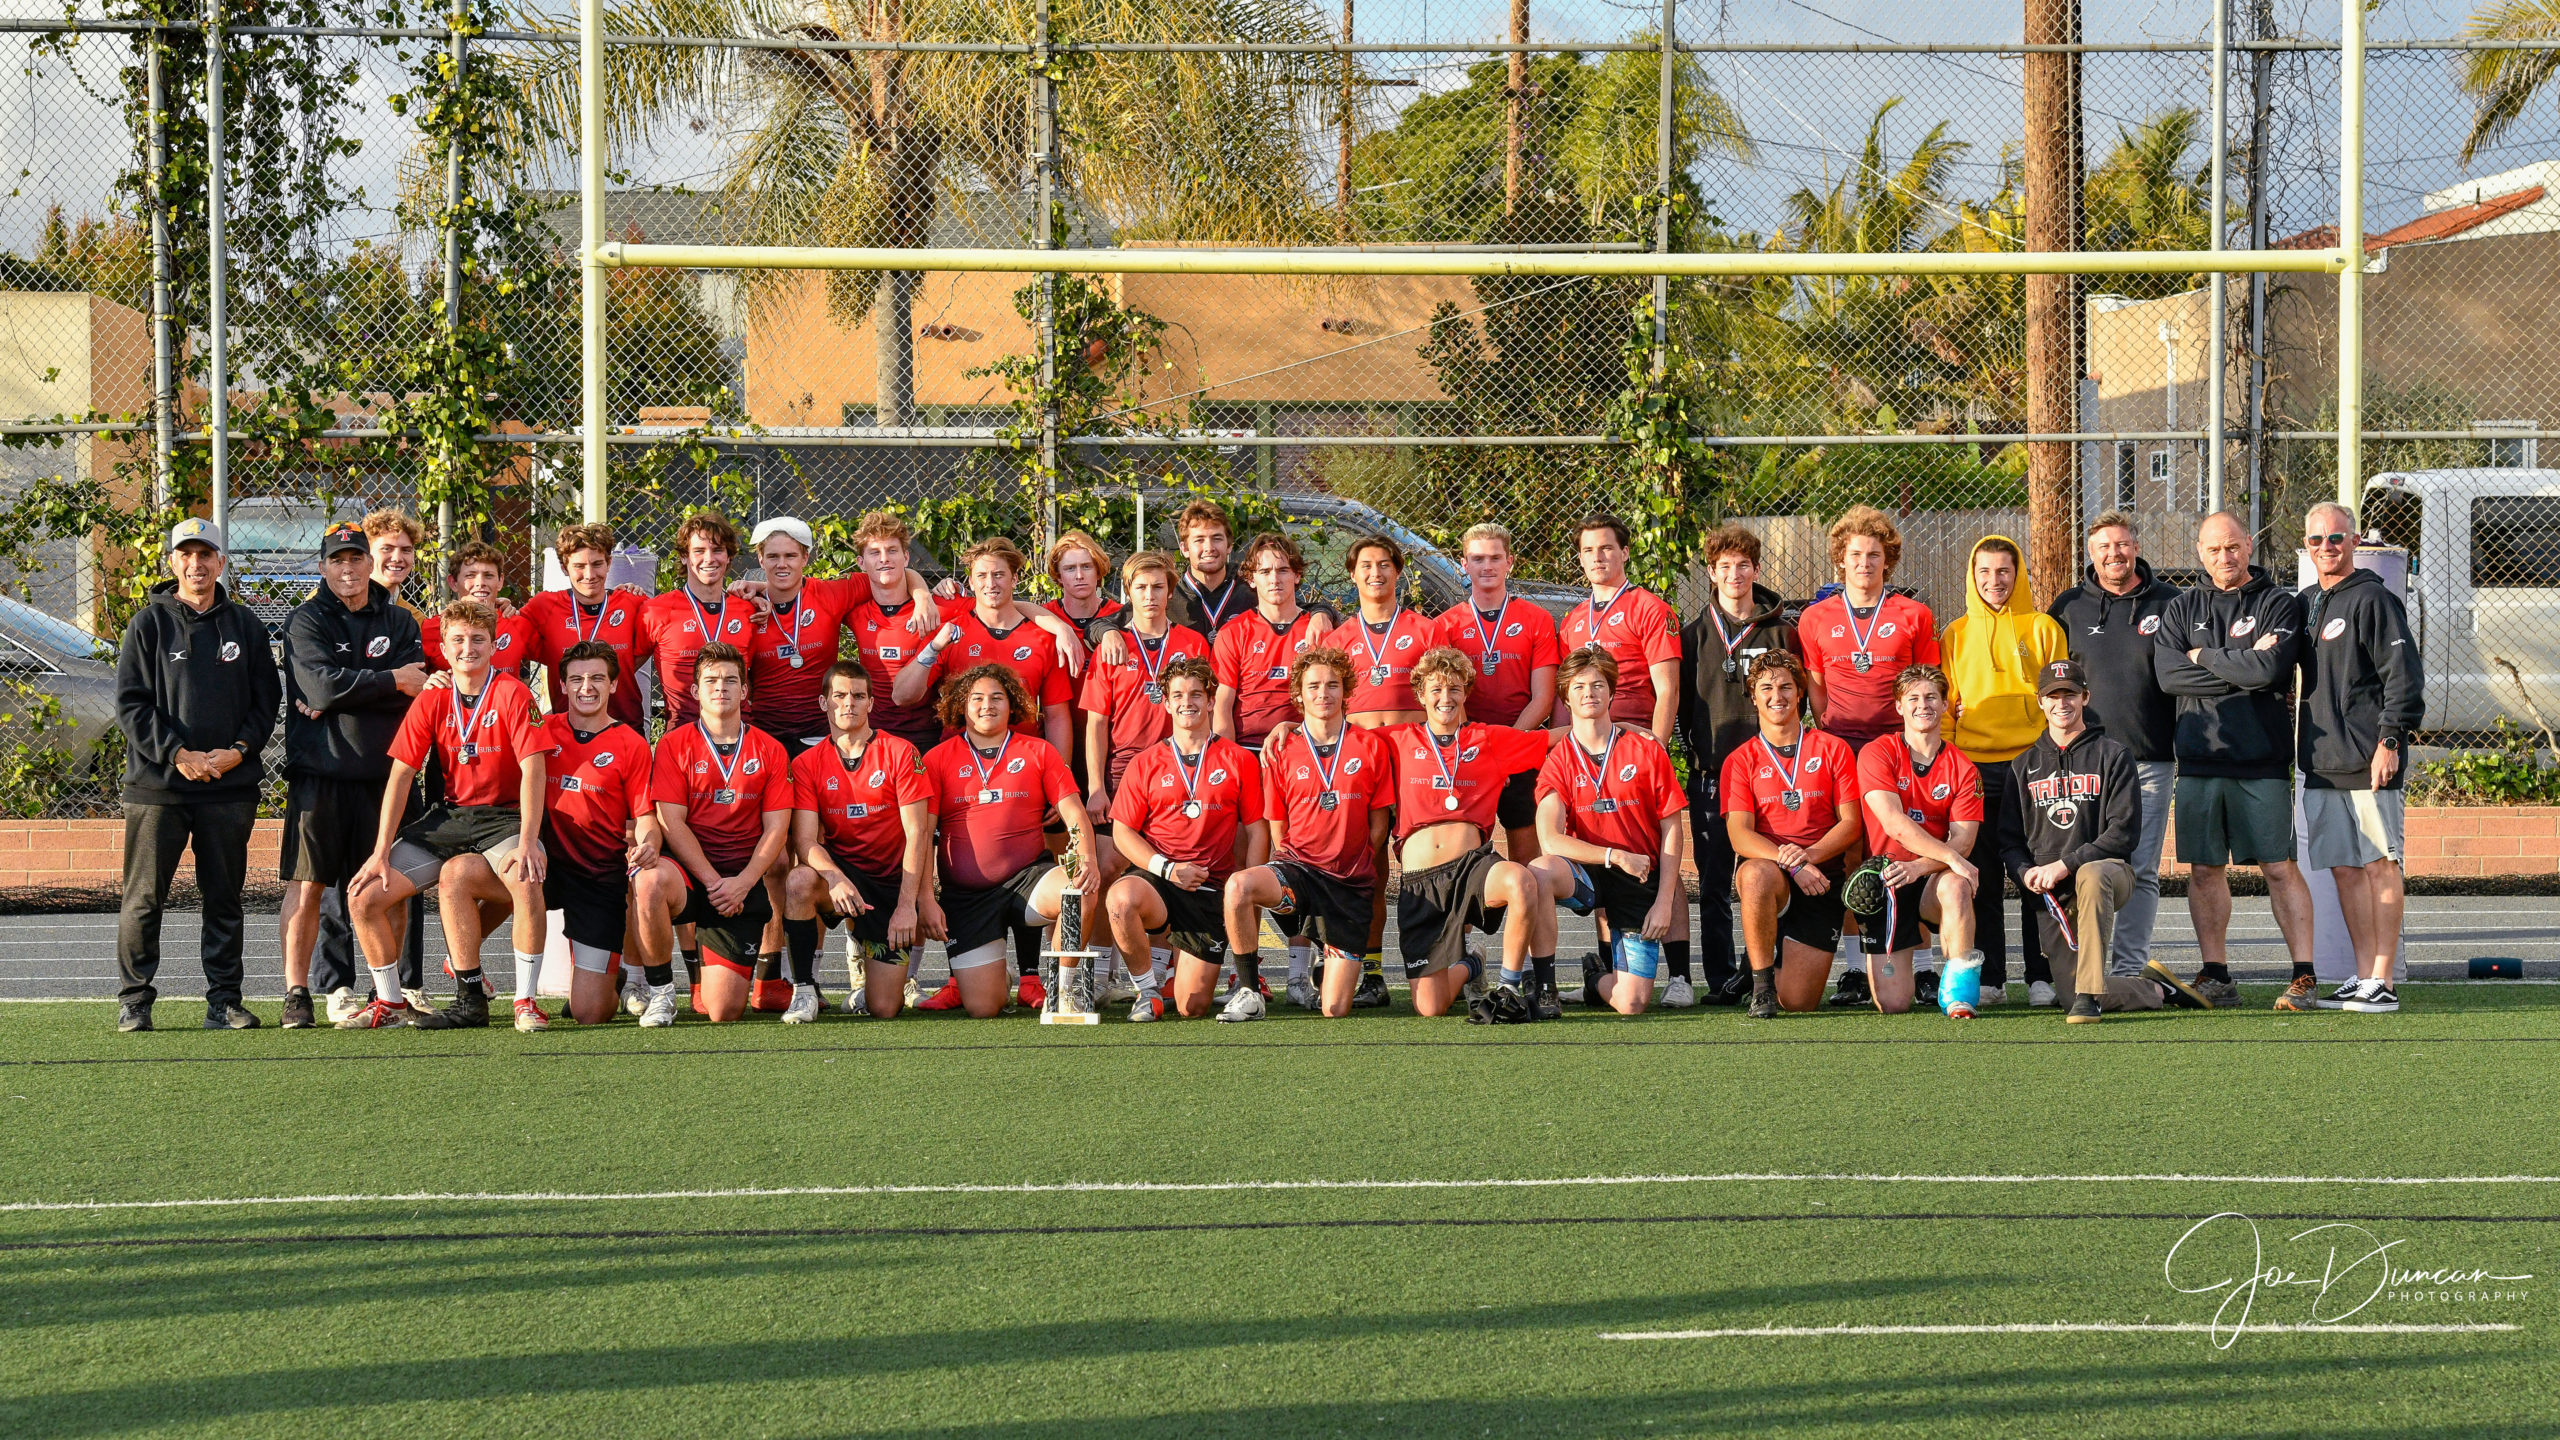 Team photo after the SCIRF varsity championship game between the St. Augustine Saints and the San Clemente Tritons on February 22, 2020.